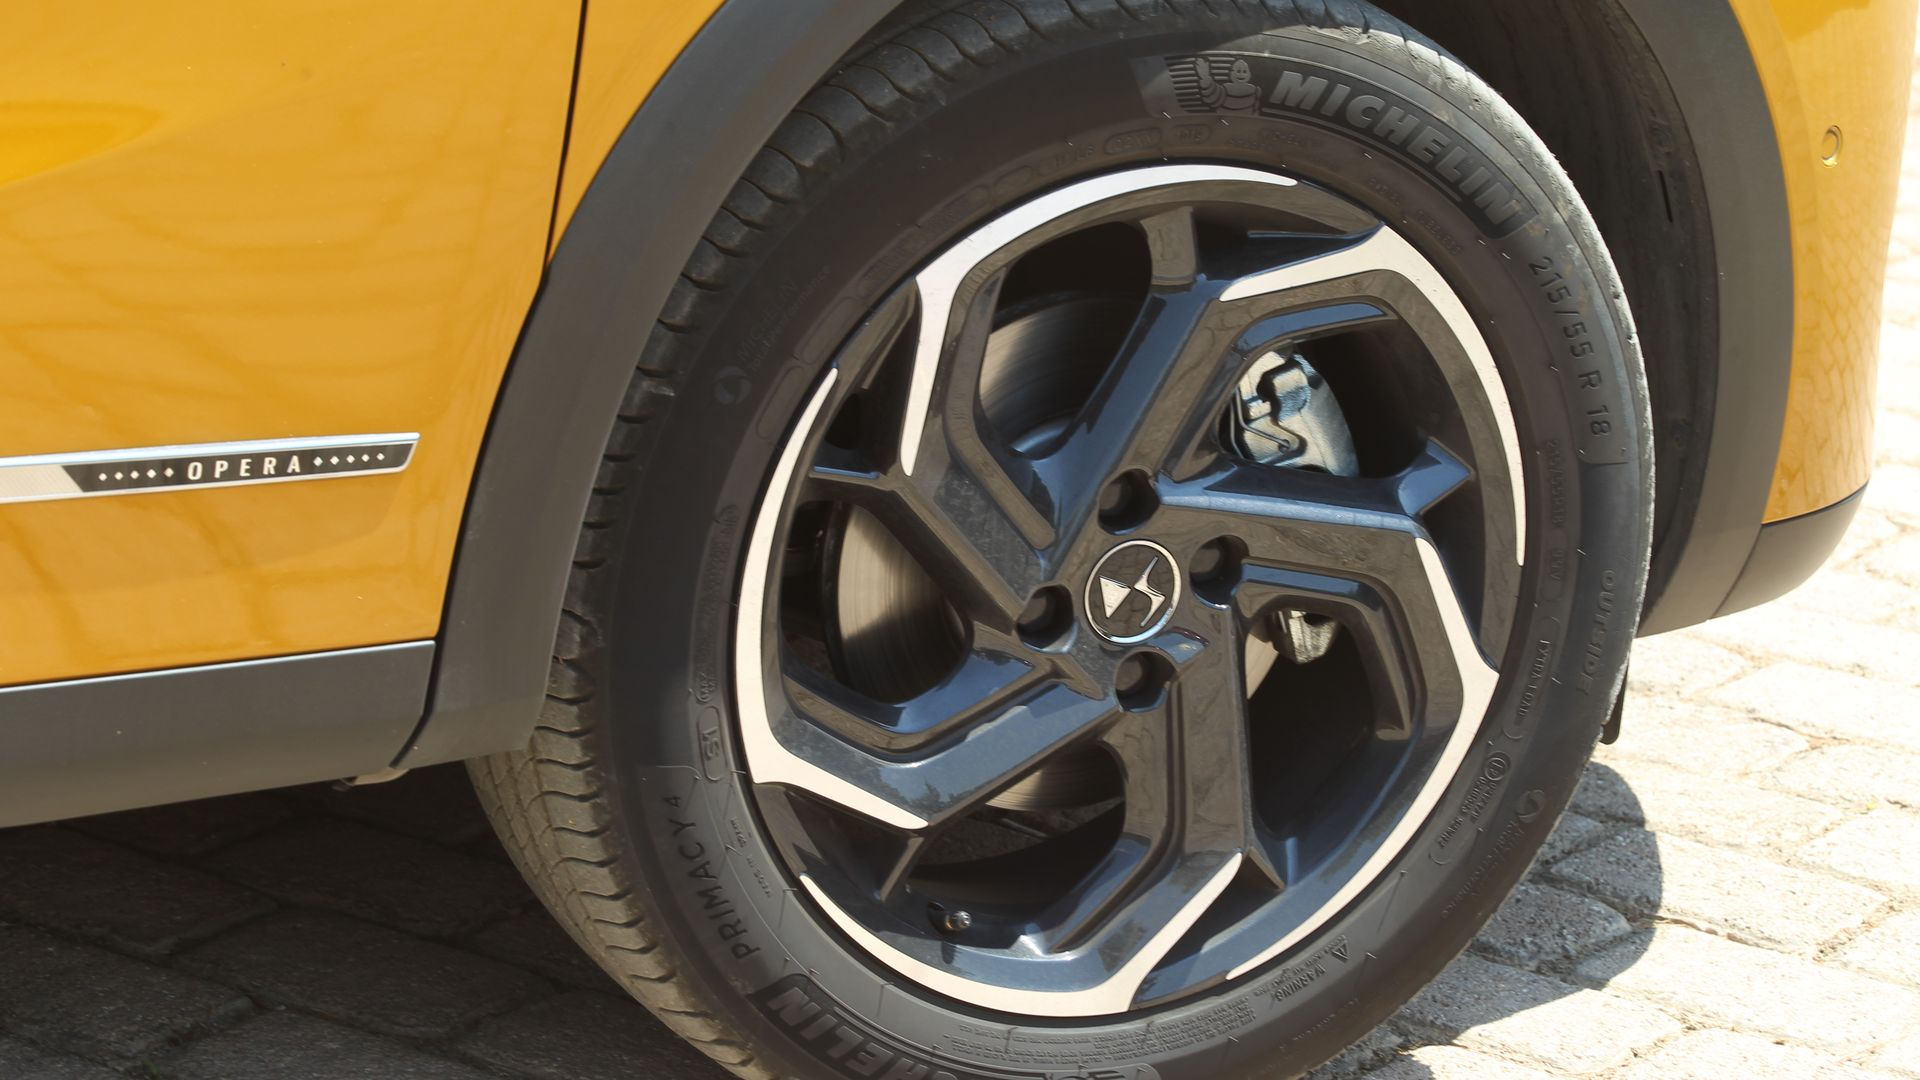 DS 3 Crossback wheel